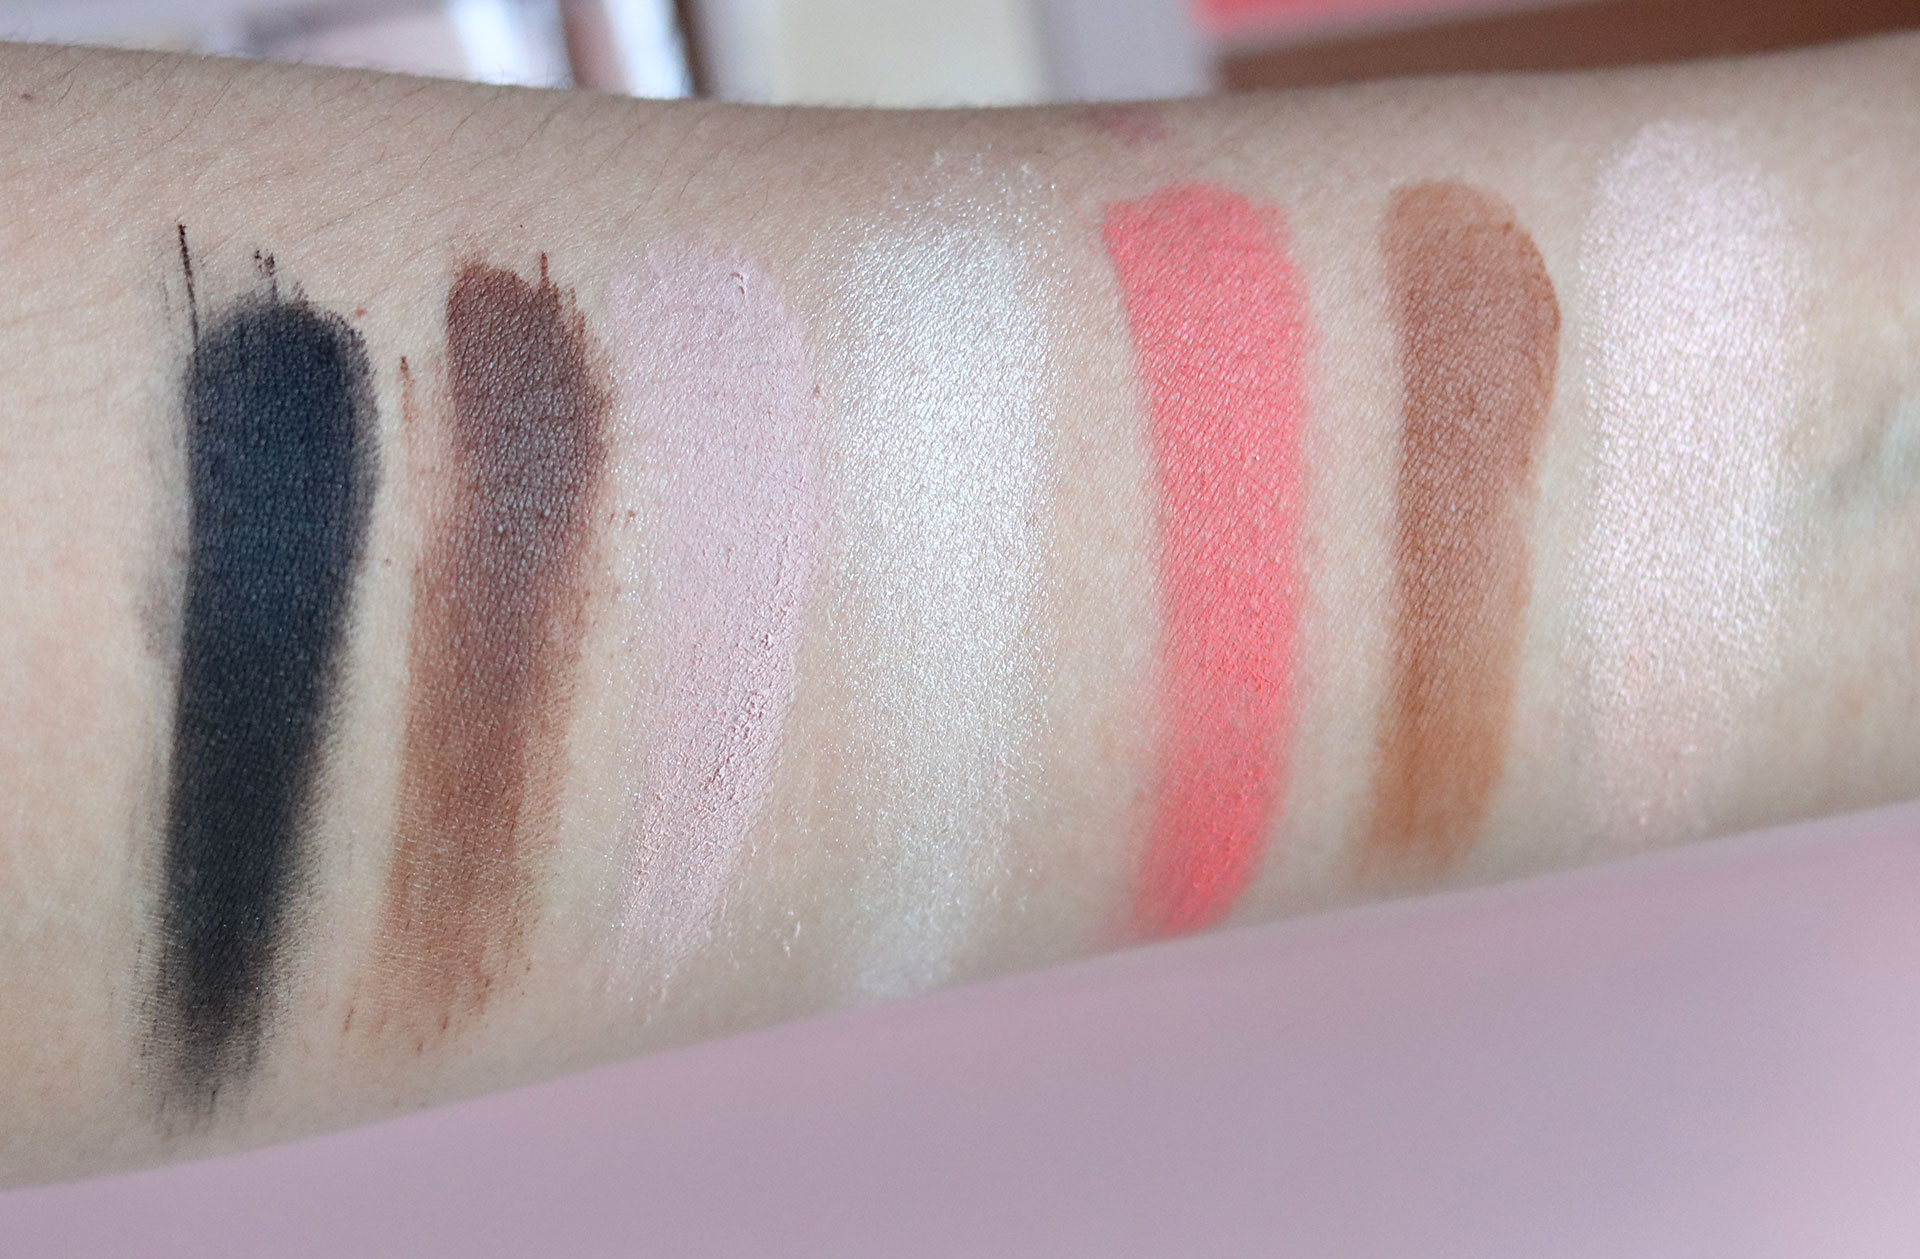 10 Gigi Hadid Maybelline Collection Review Swatches Photos - Jetsetter Palette - Gen-zel She Sings Beauty